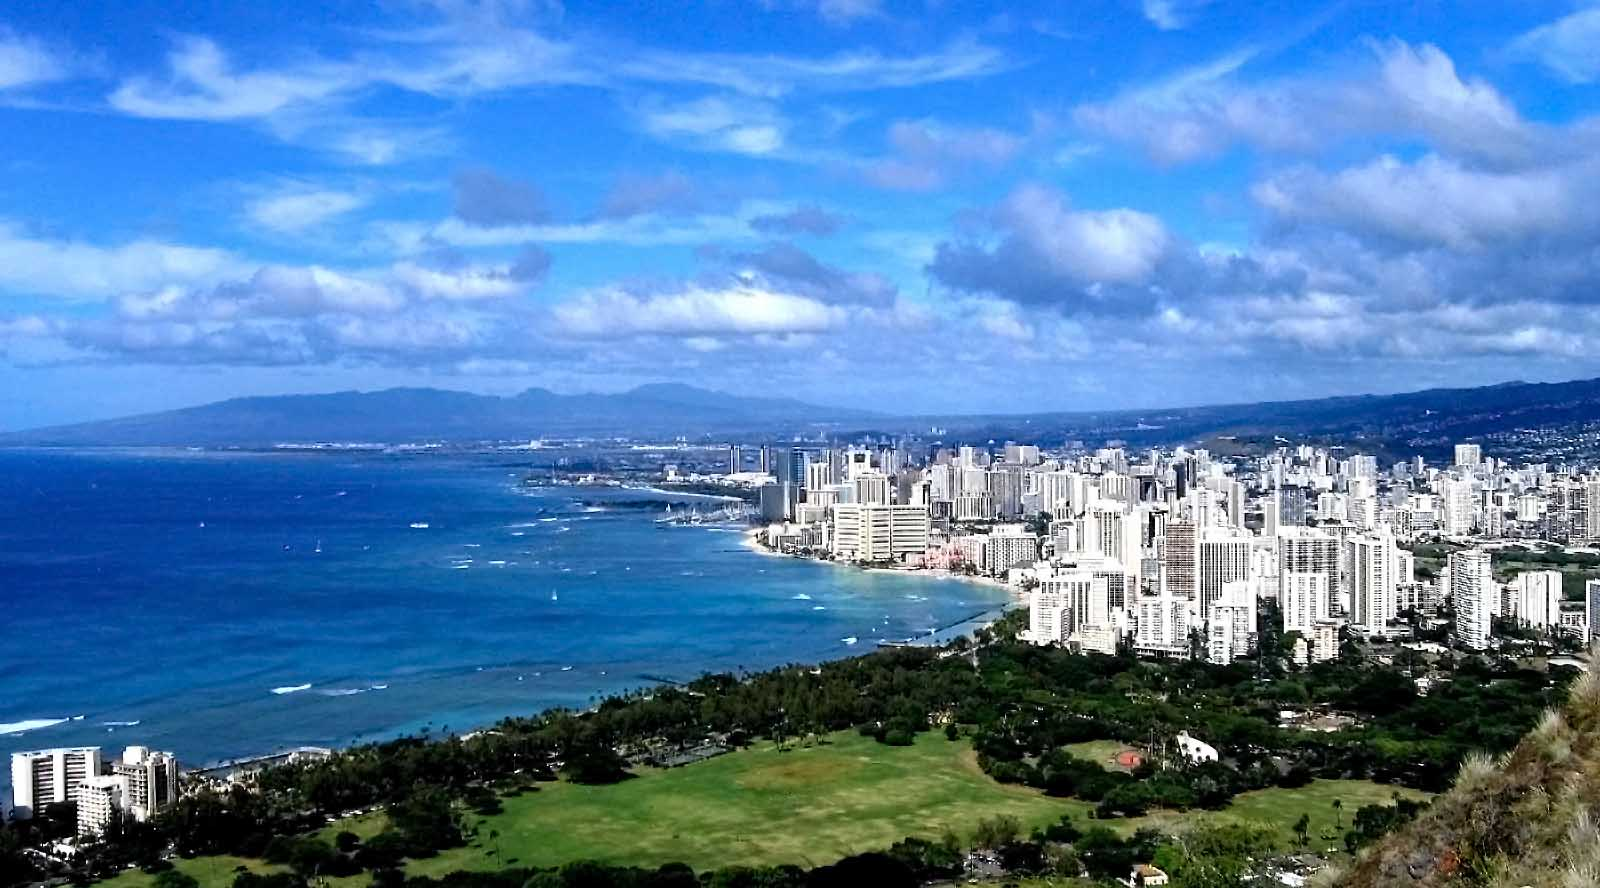 Hiking to Diamond Head, one of the things to do in Waikiki.